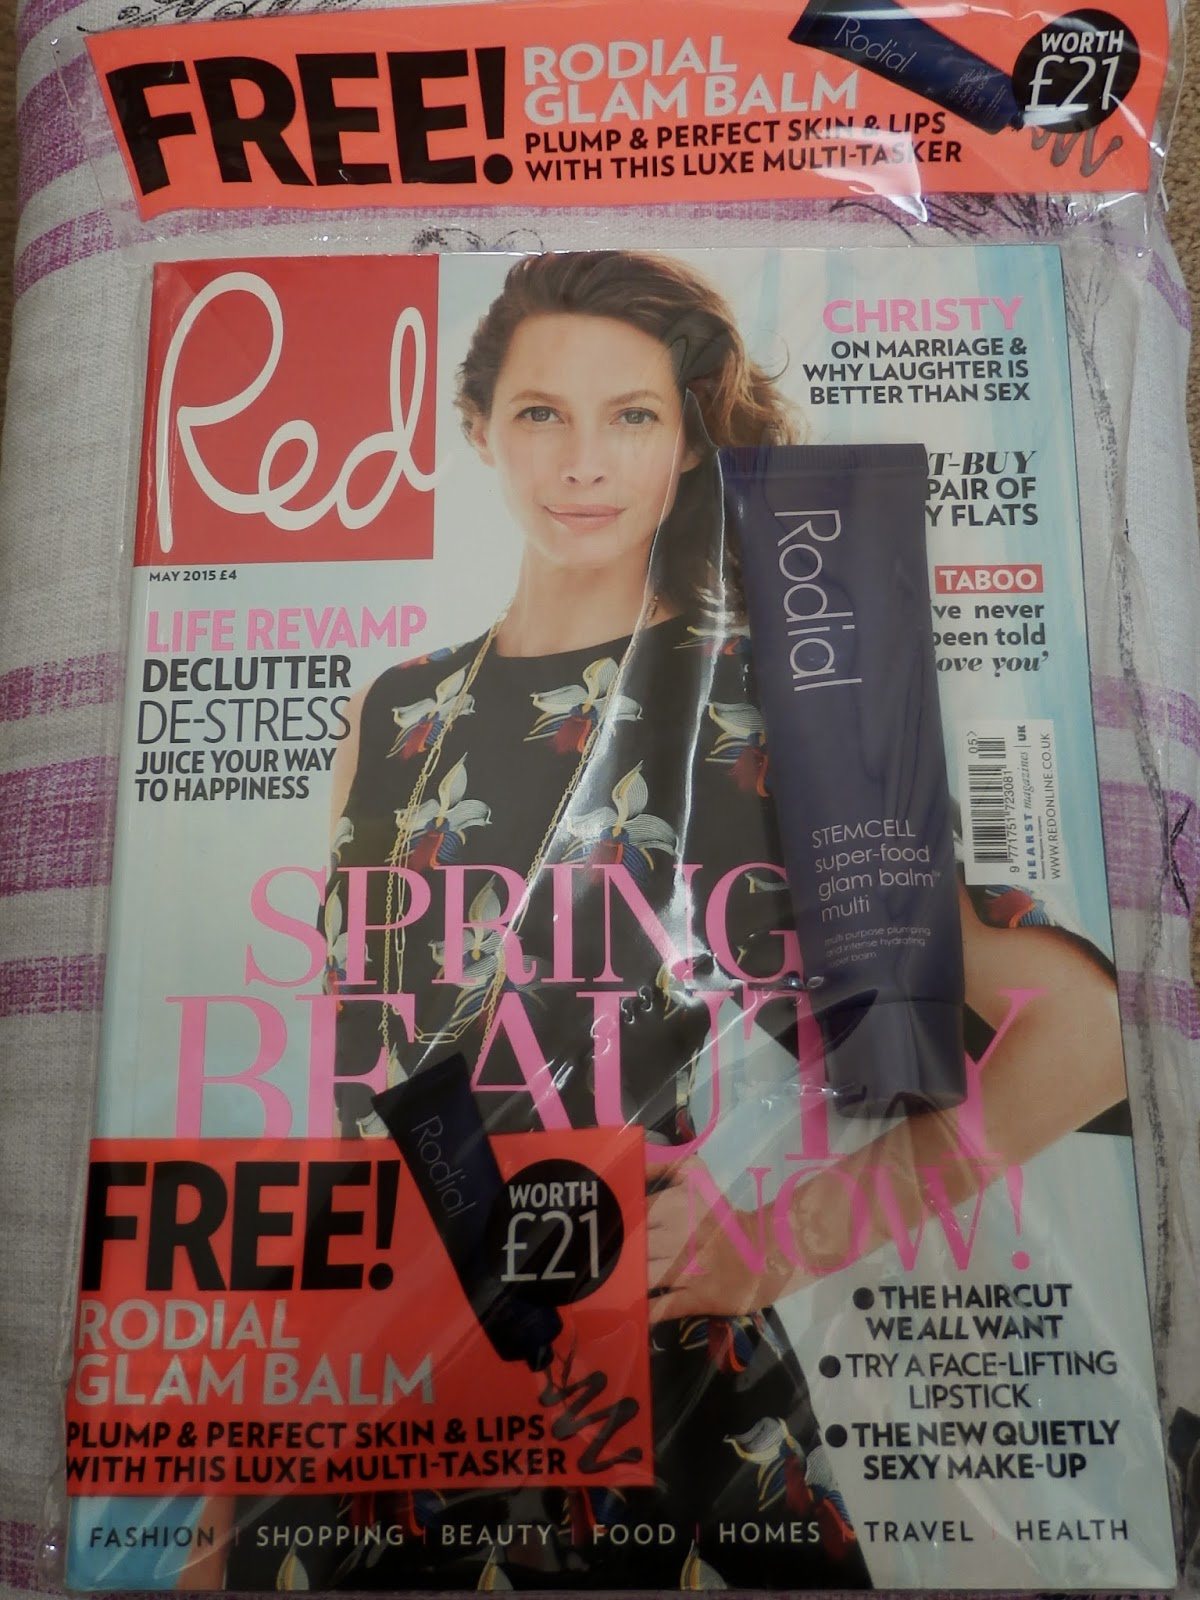 Magazine Freebies - Red Magazine - Rodial Stemcell Super-food Glam Balm